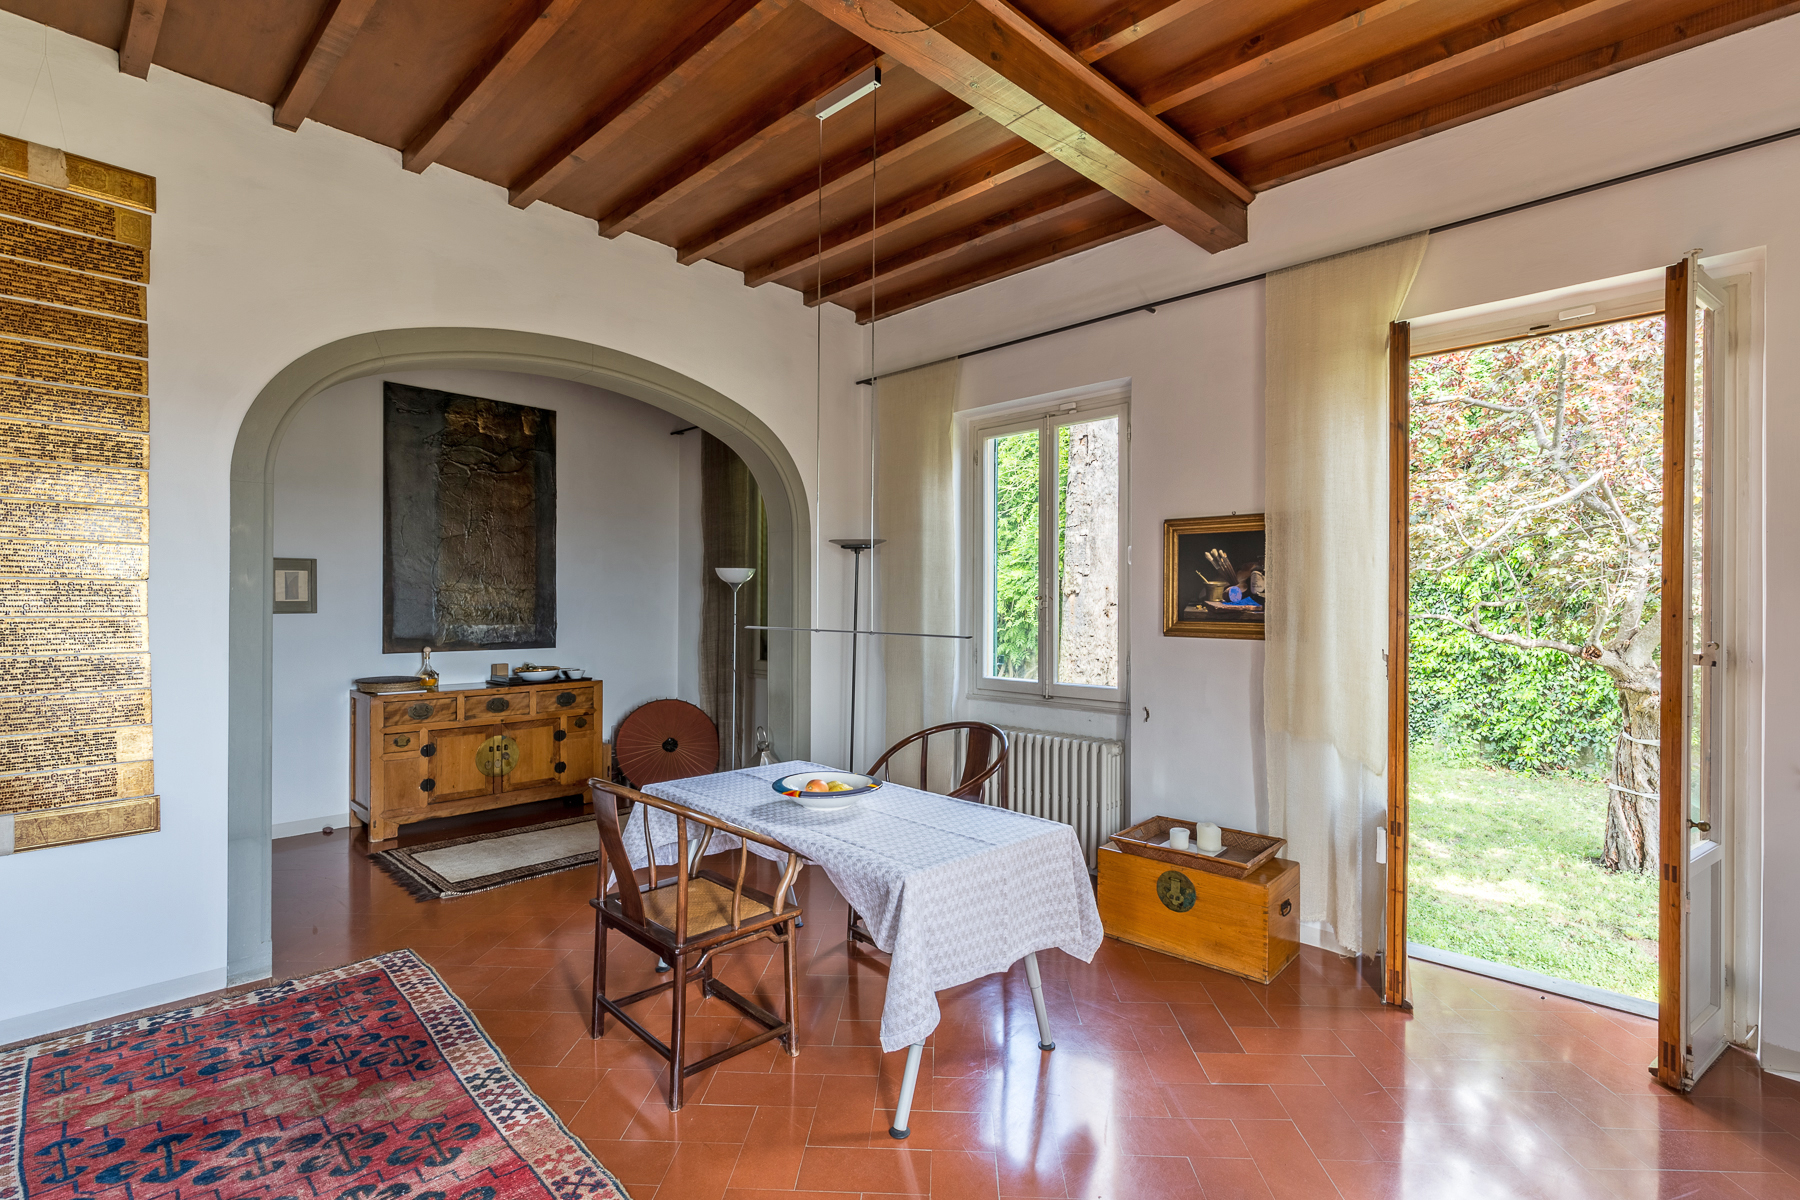 Additional photo for property listing at Luminoso appartamento con giardino privato Via della Lastra Firenze, Firenze 50139 Italia